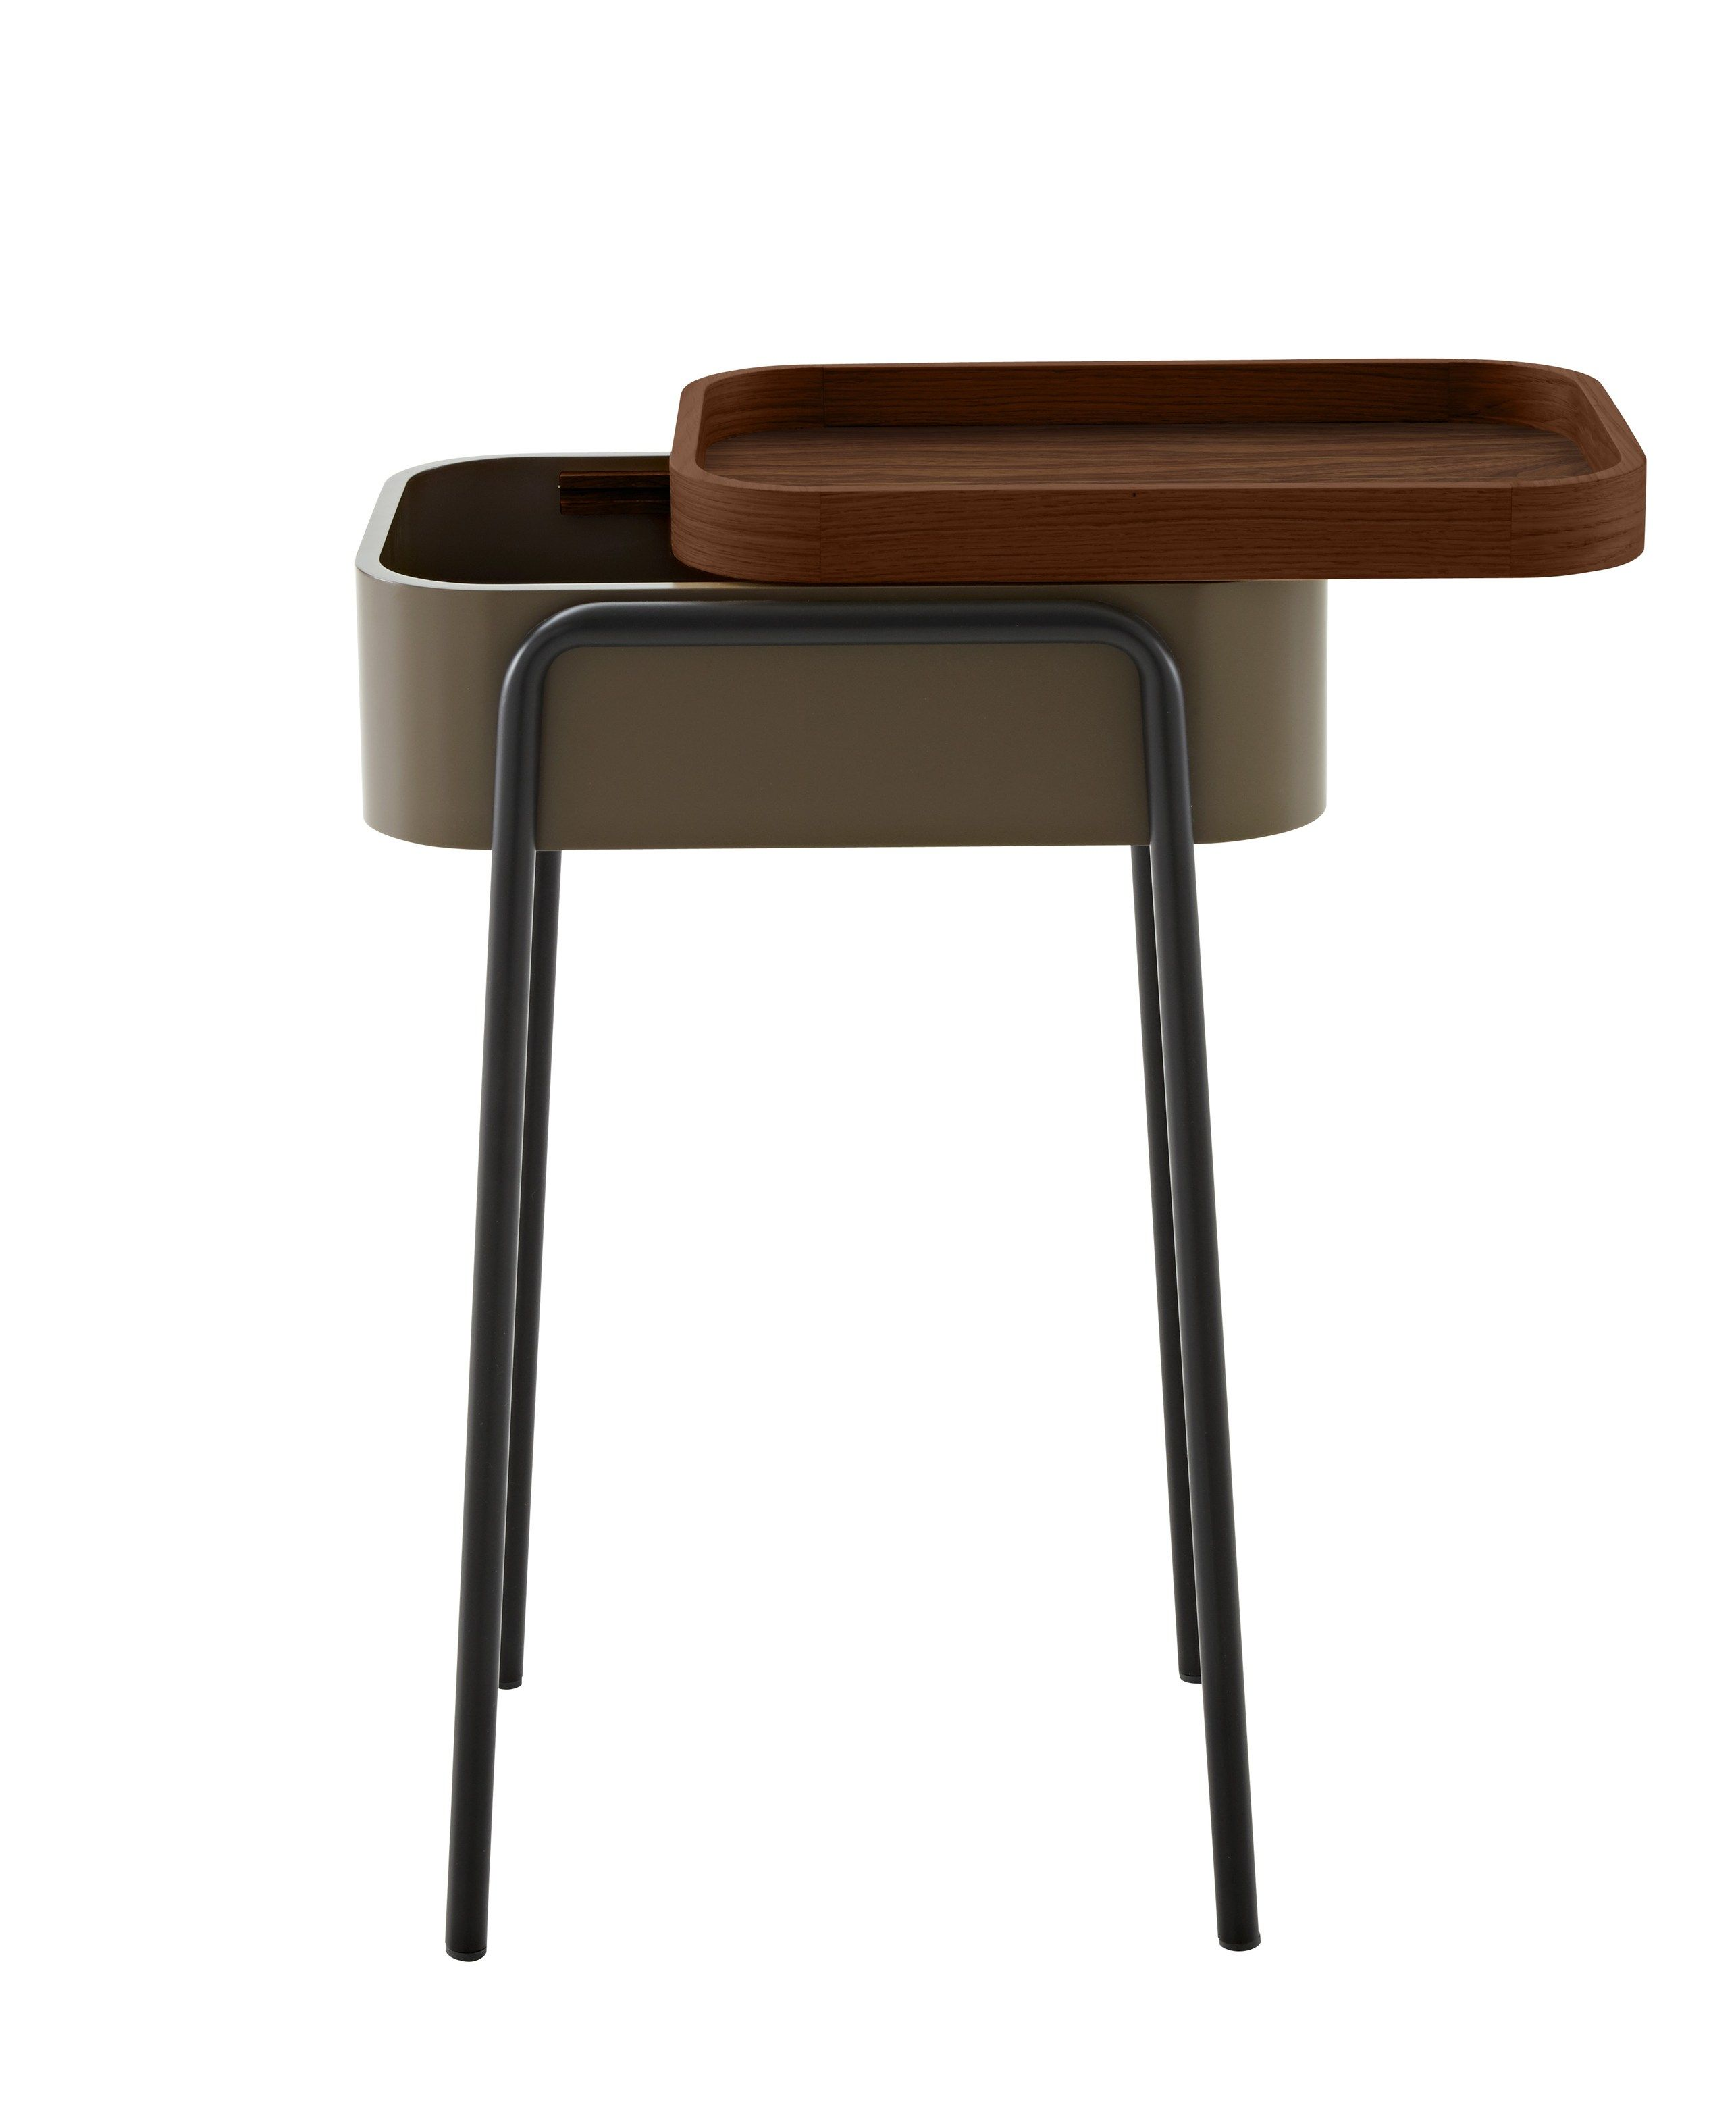 Italia Design Möbel Wooden Coffee Table Bedside Table Couliss By Roset Italia Design